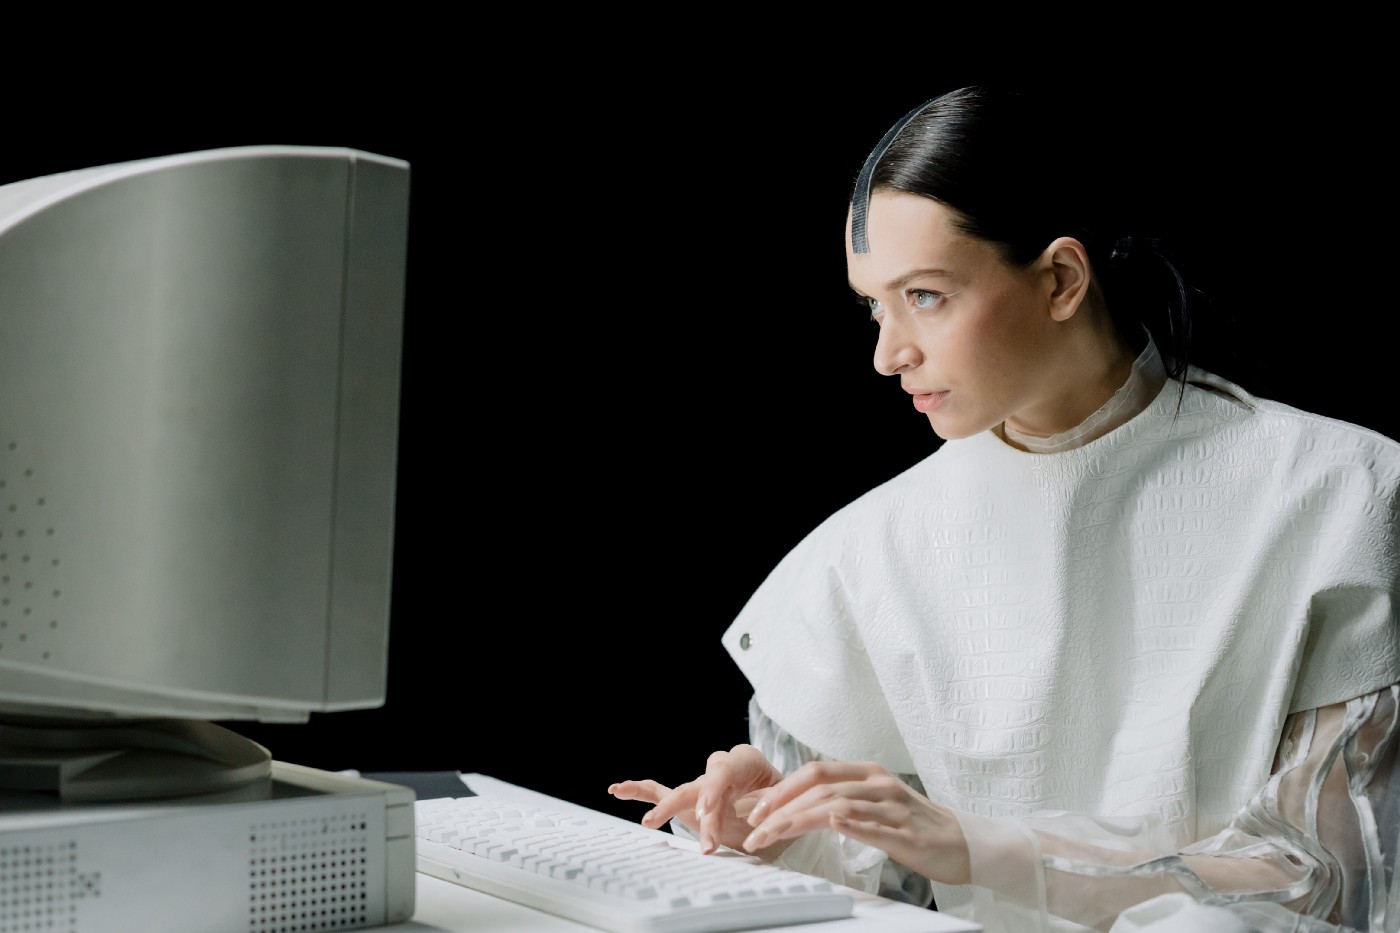 Woman in White Top Using an old Computer. Her clothing looks futuristic, and she looks like she's trying to hack into it. Kind of sly.